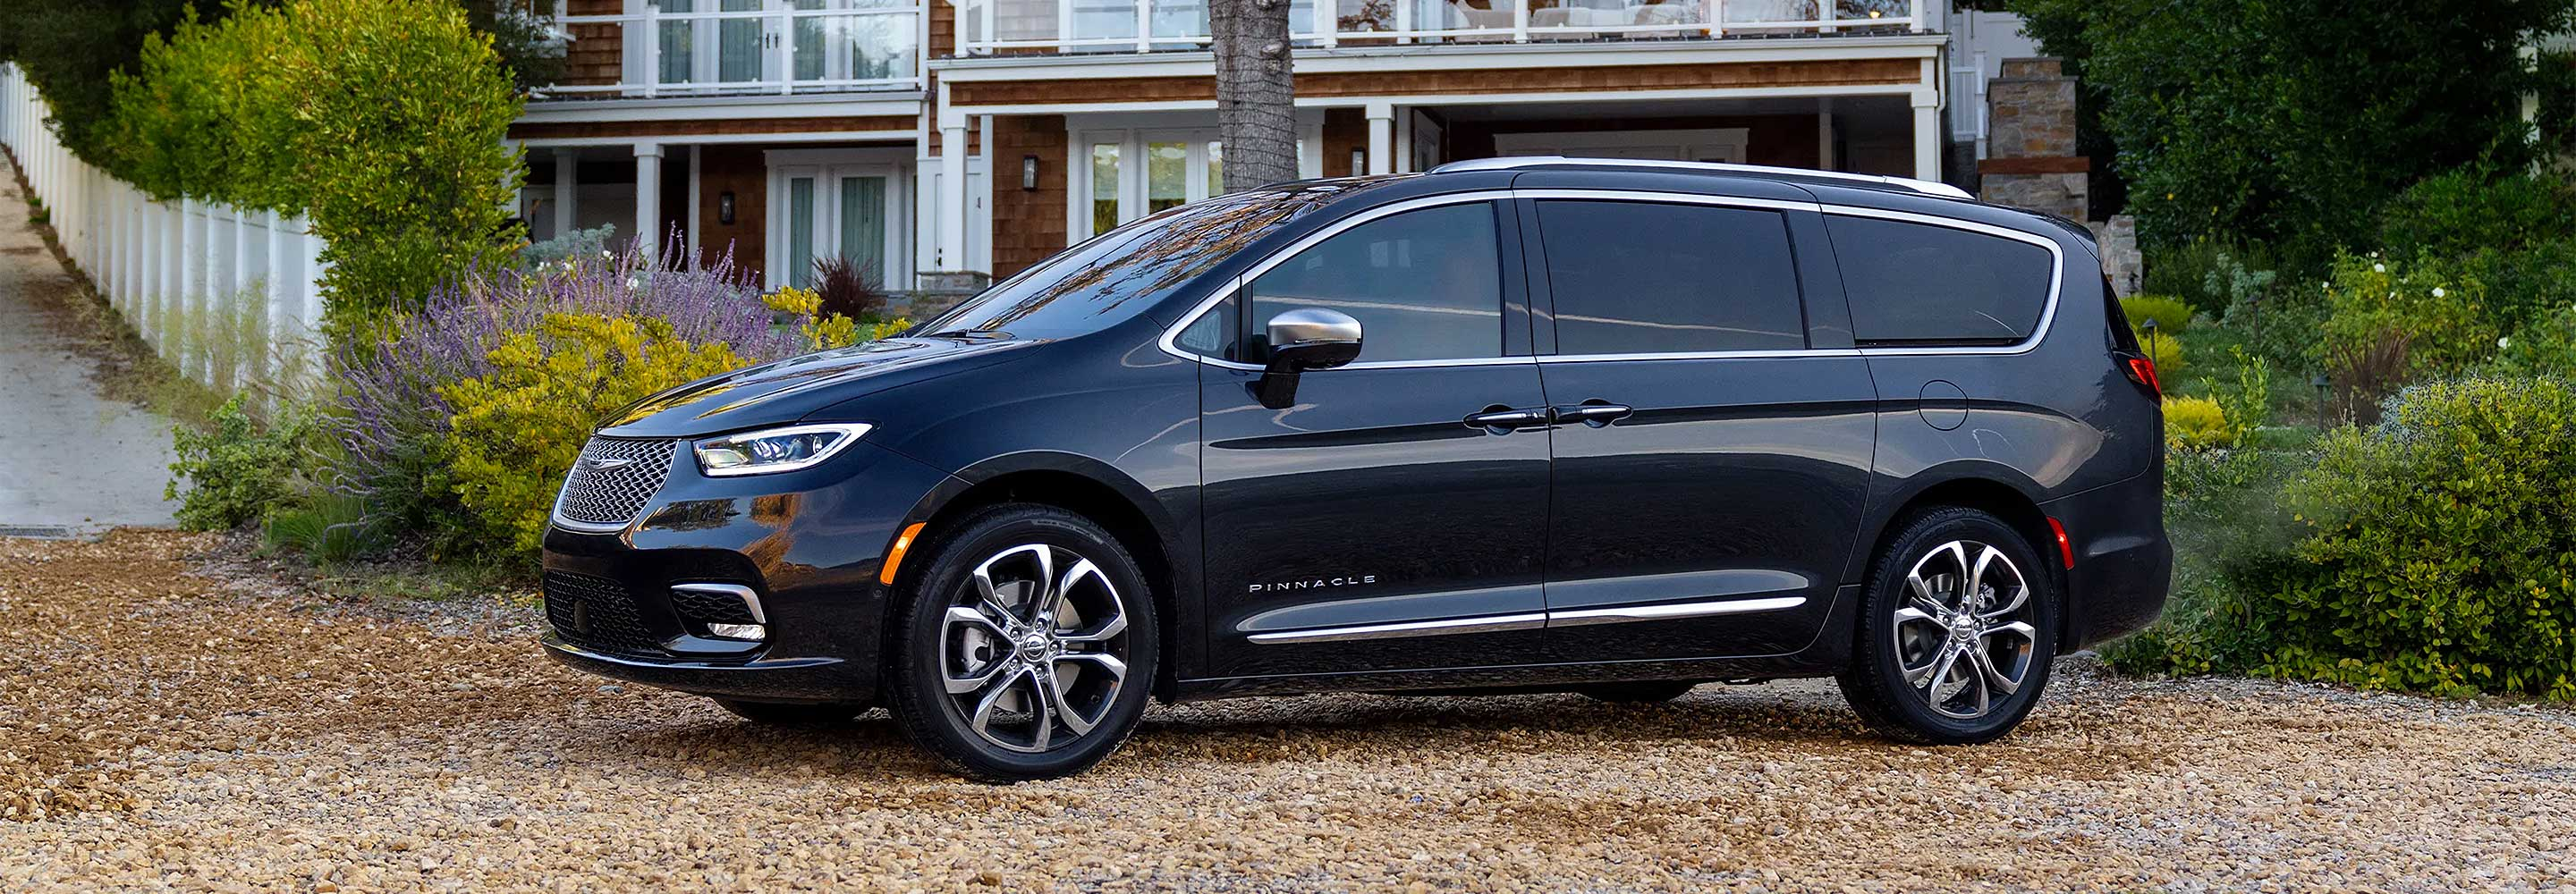 The Best New Family Car is the 2021 Chrysler Pacifica